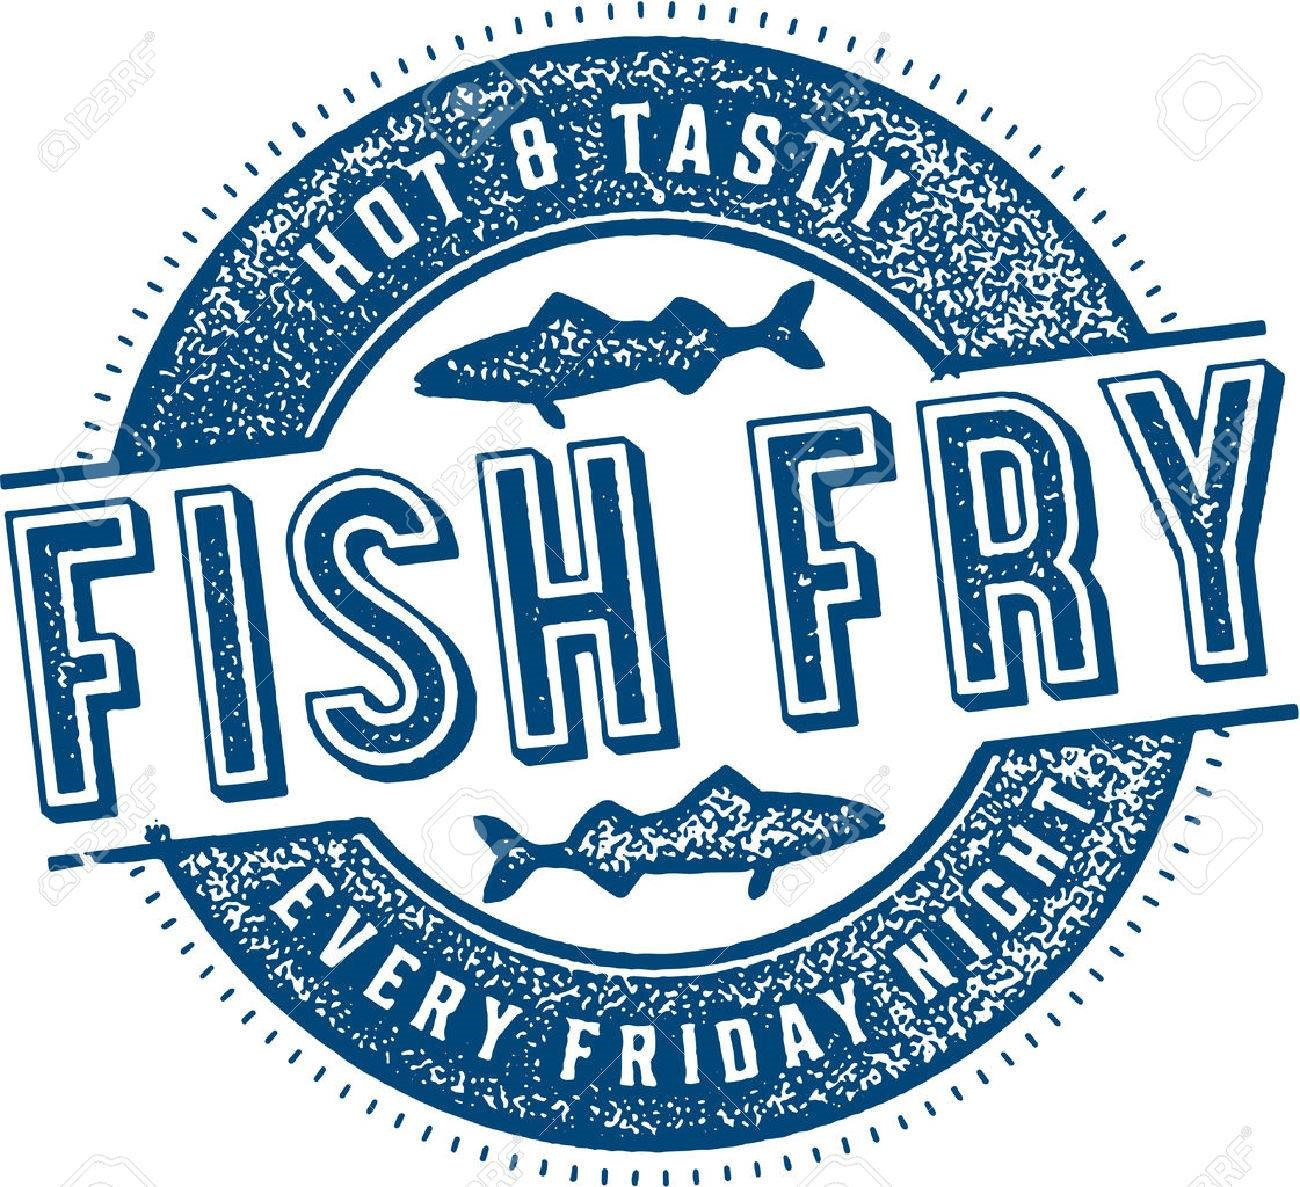 Fish Friday!